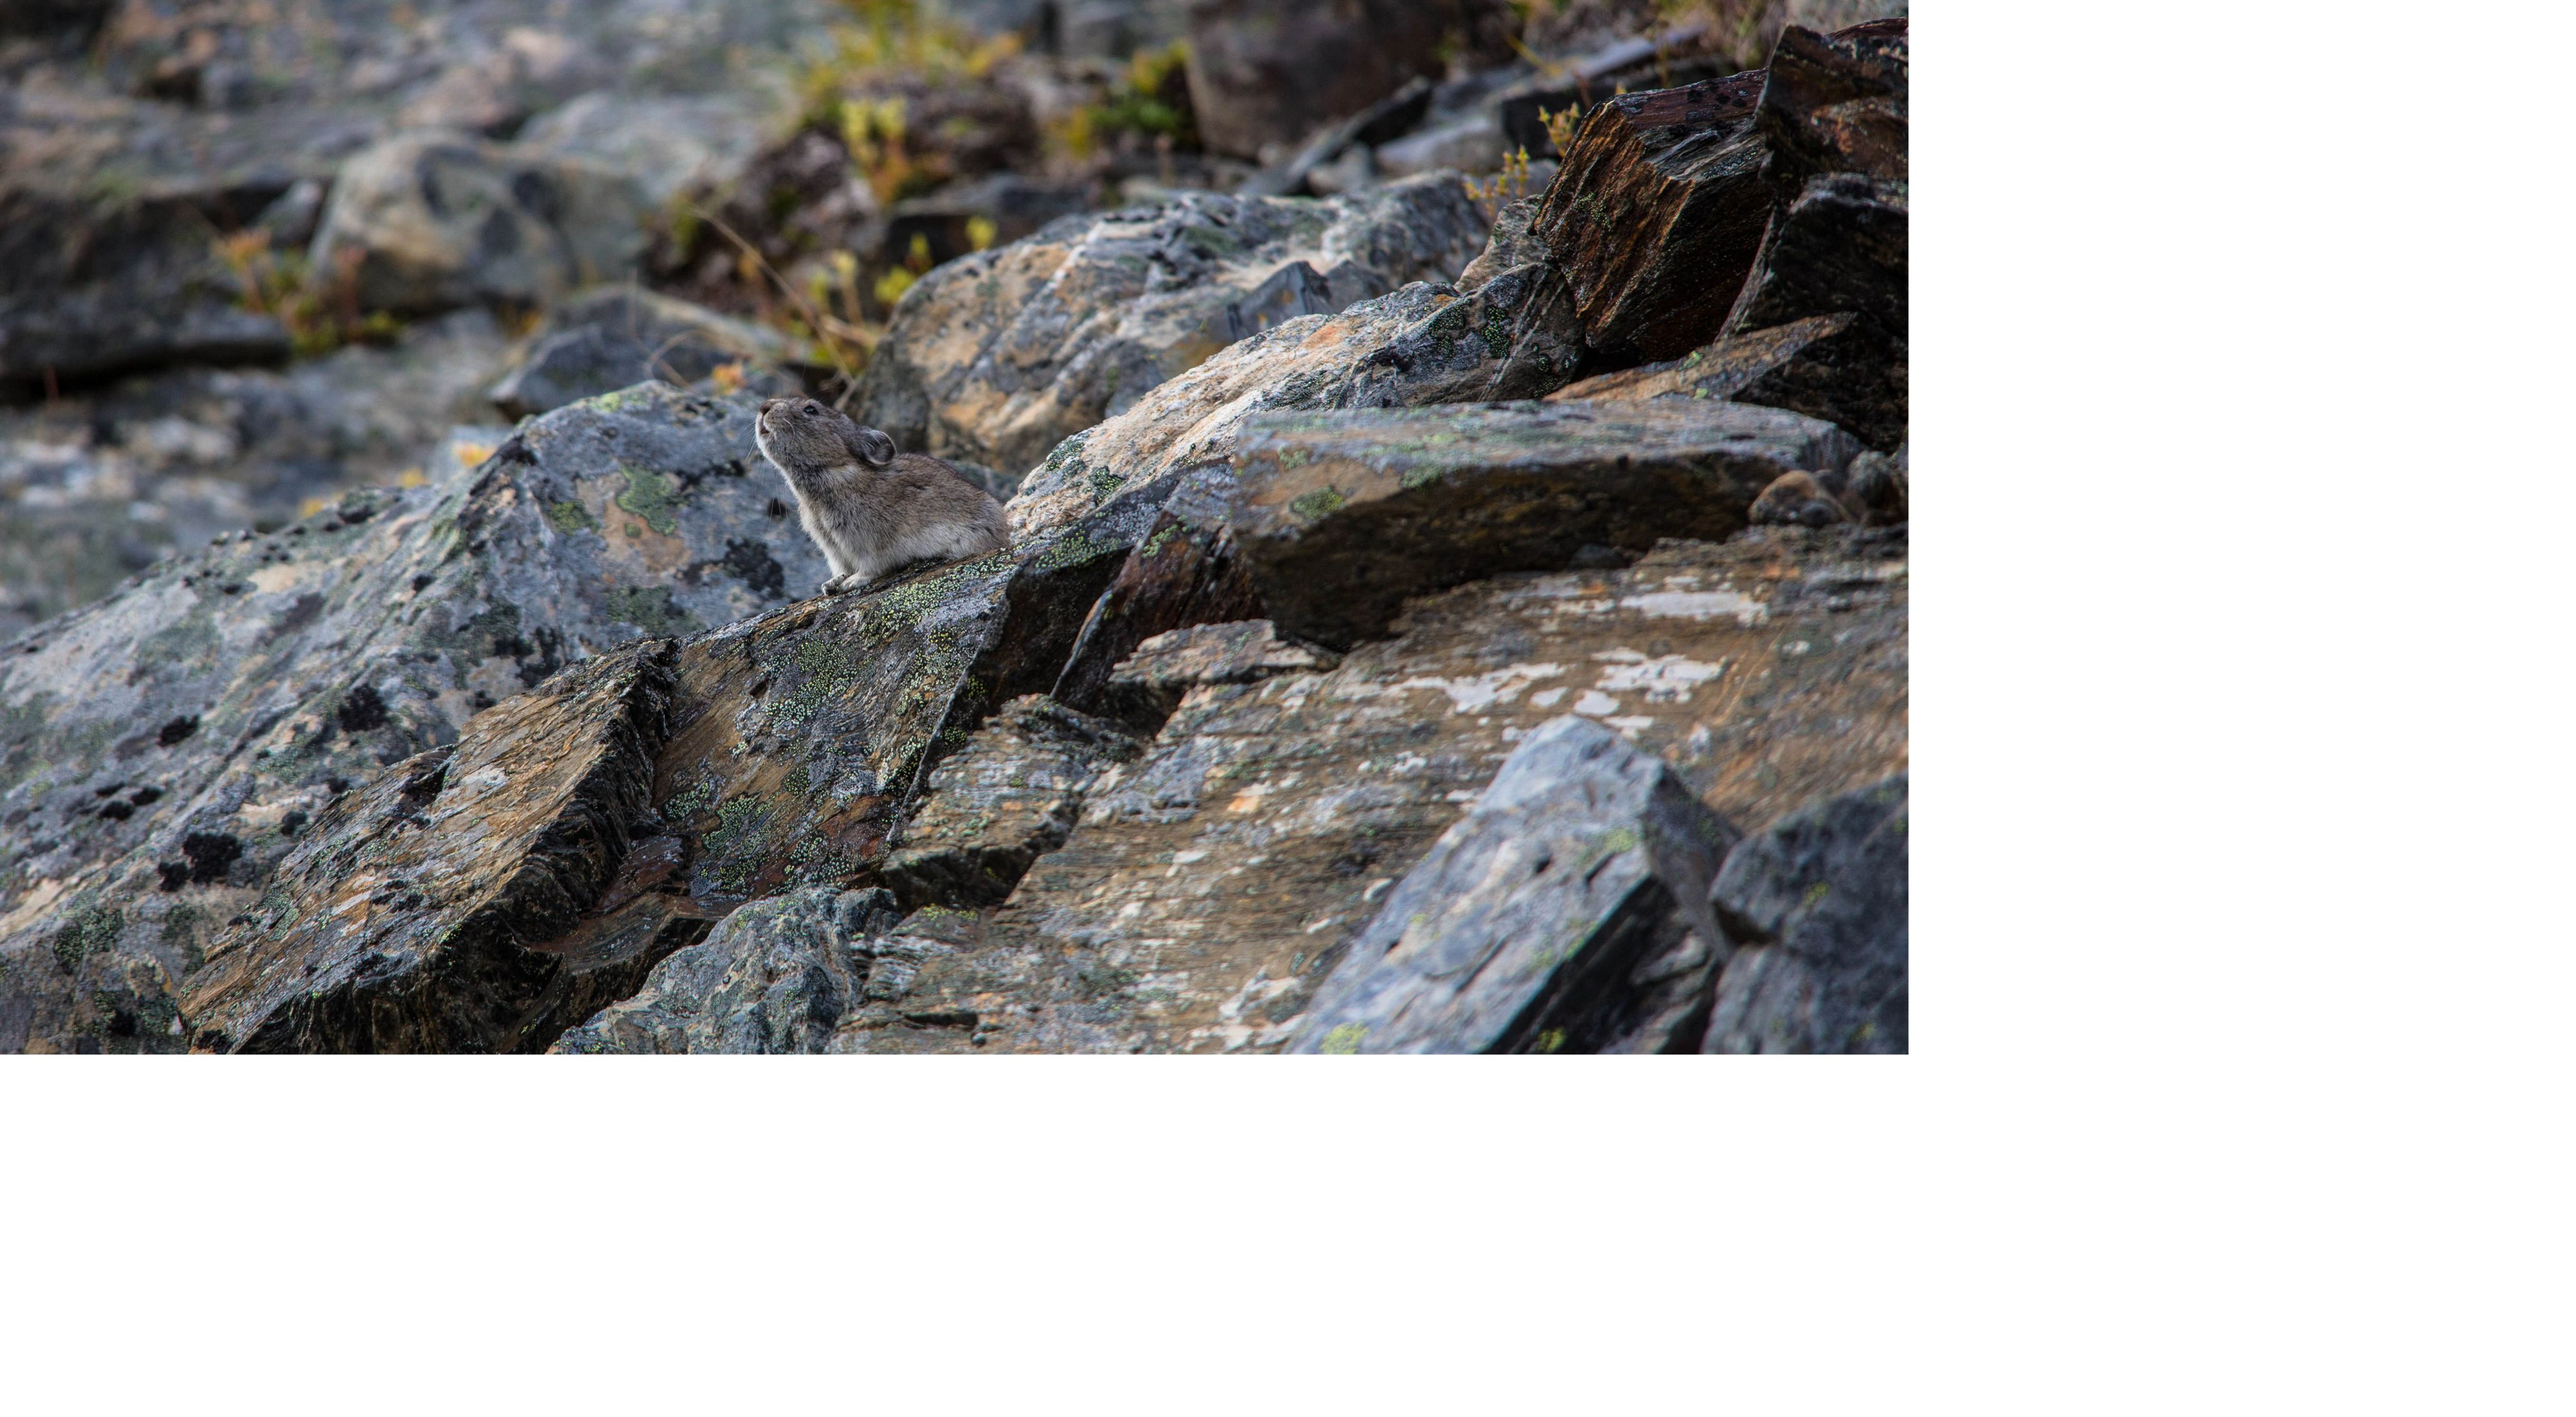 A small, brown pika sits on a lichen-covered rock with its nose in the air and its ears pulled back.